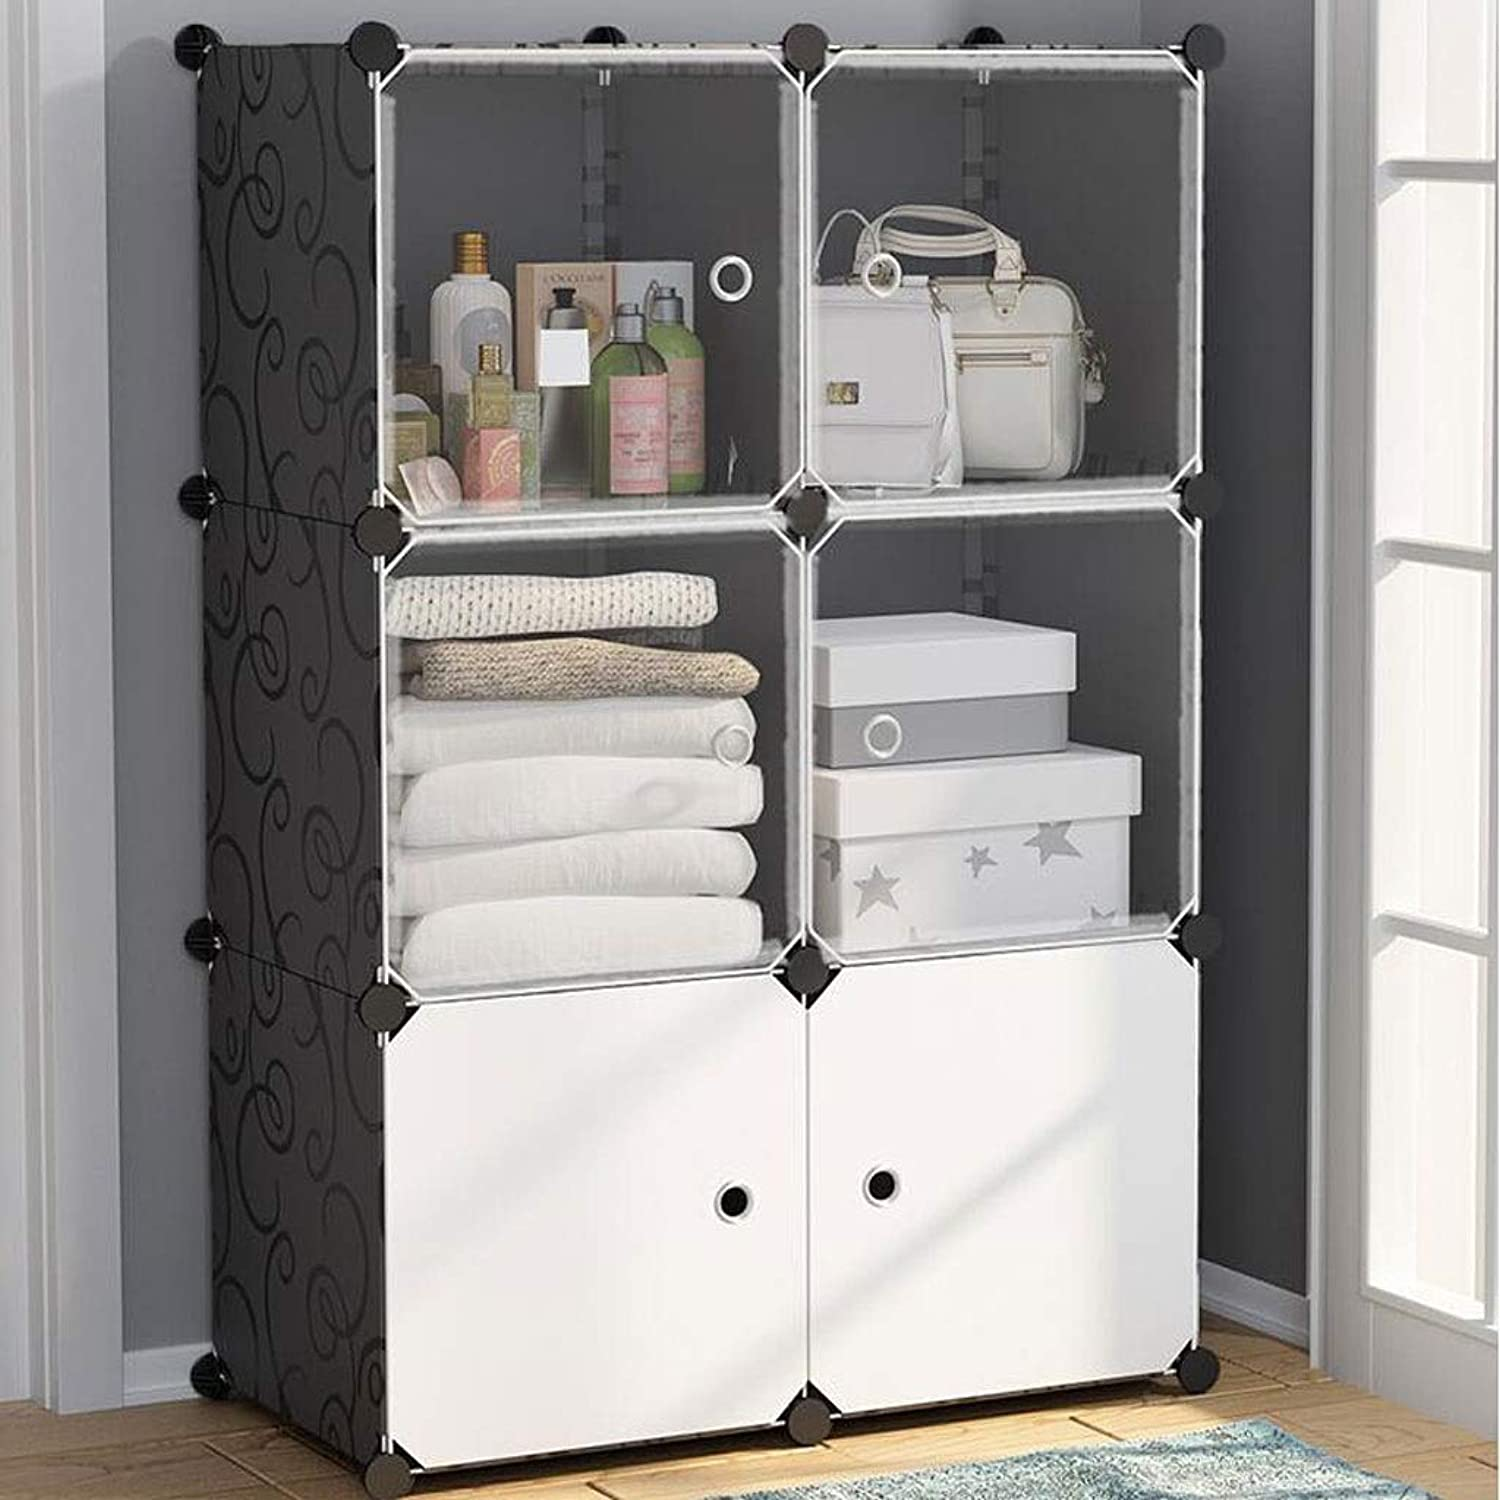 Portable Clothes Closet Wardrobe Bedroom Armoire Dresser Cube Storage Organizer White, (Size   L75W37H111CM)